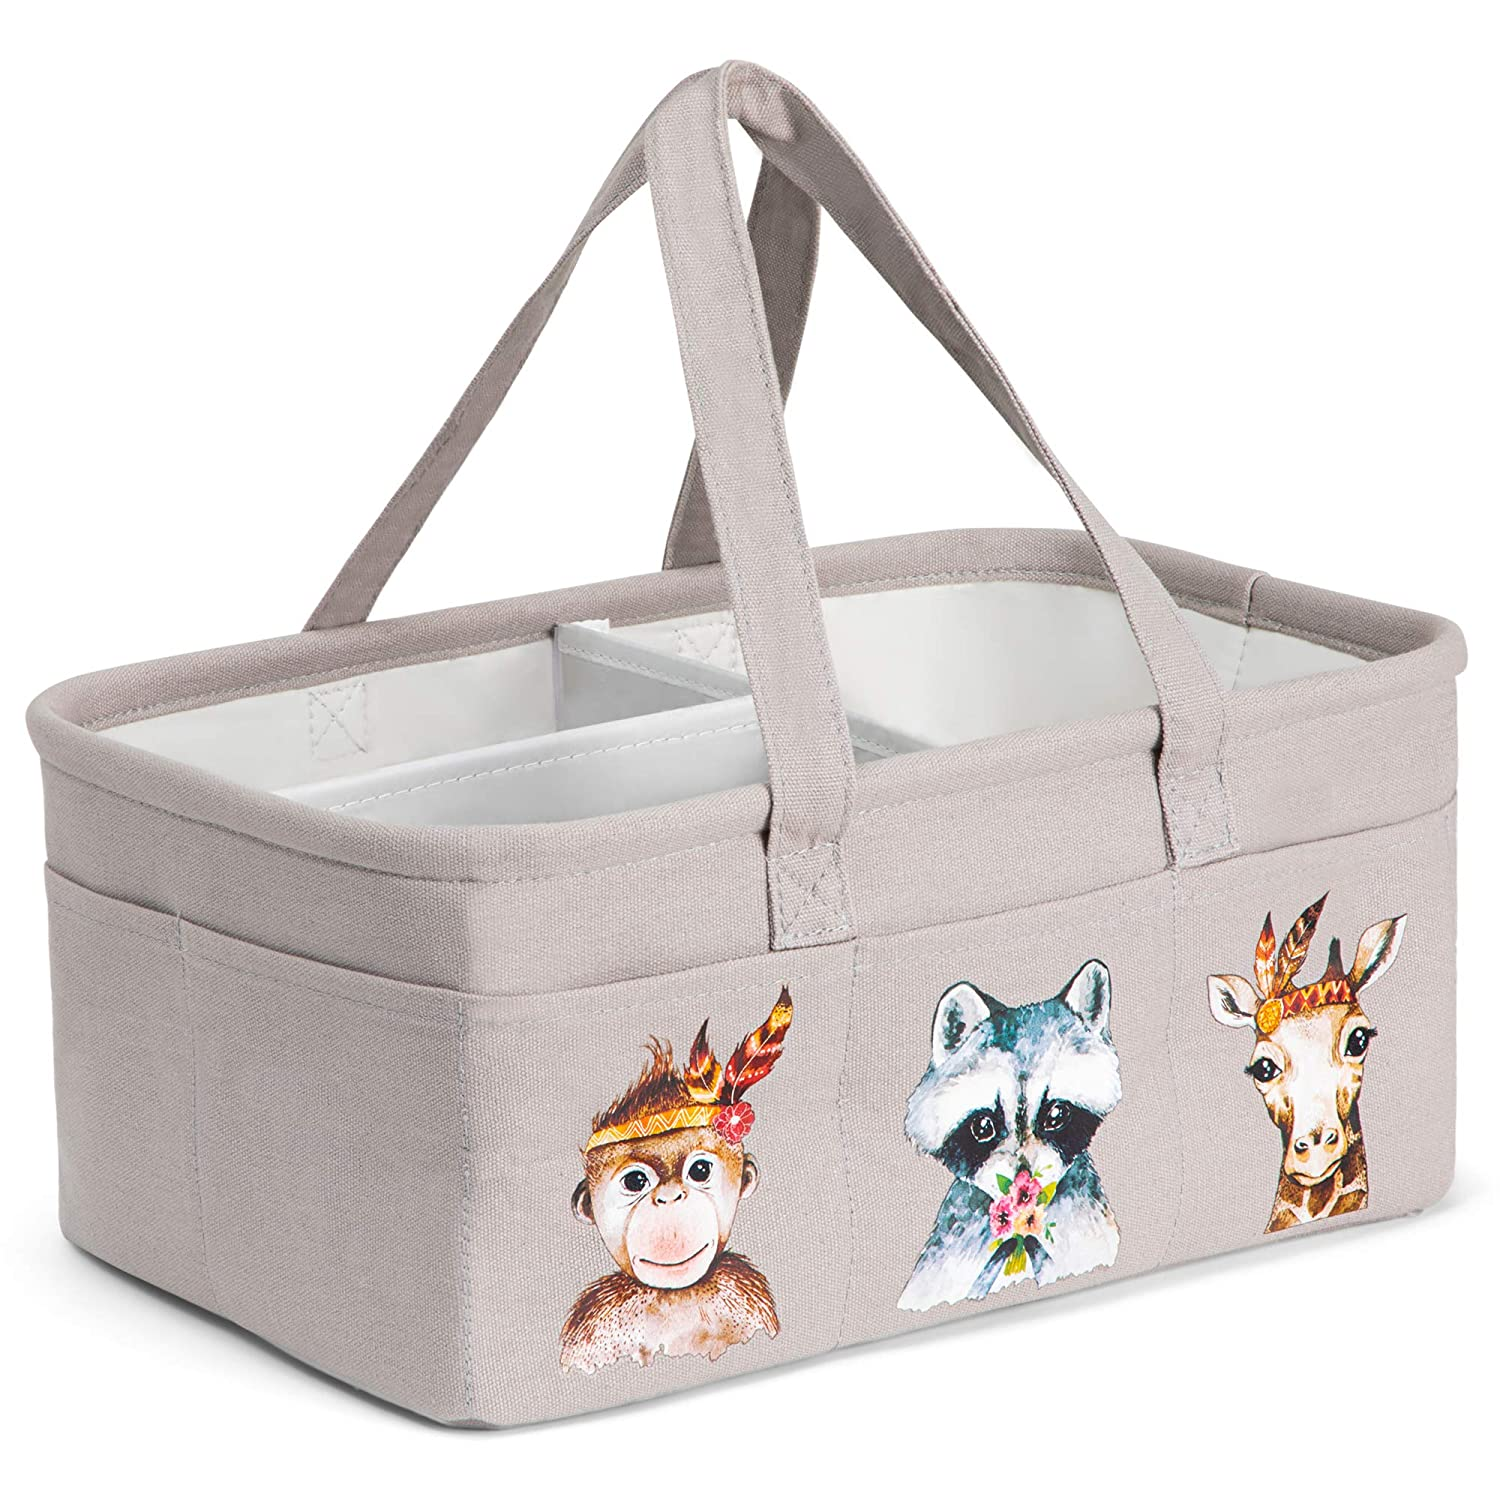 "3 LITTLE GIGGLES Diaper Caddy Organizer with Removable Dividers 10 Toy Storage Pockets - Waterproof Canvas, Beige, 16 x 10"" - Portable Baby Basket 81ud5p976zL"